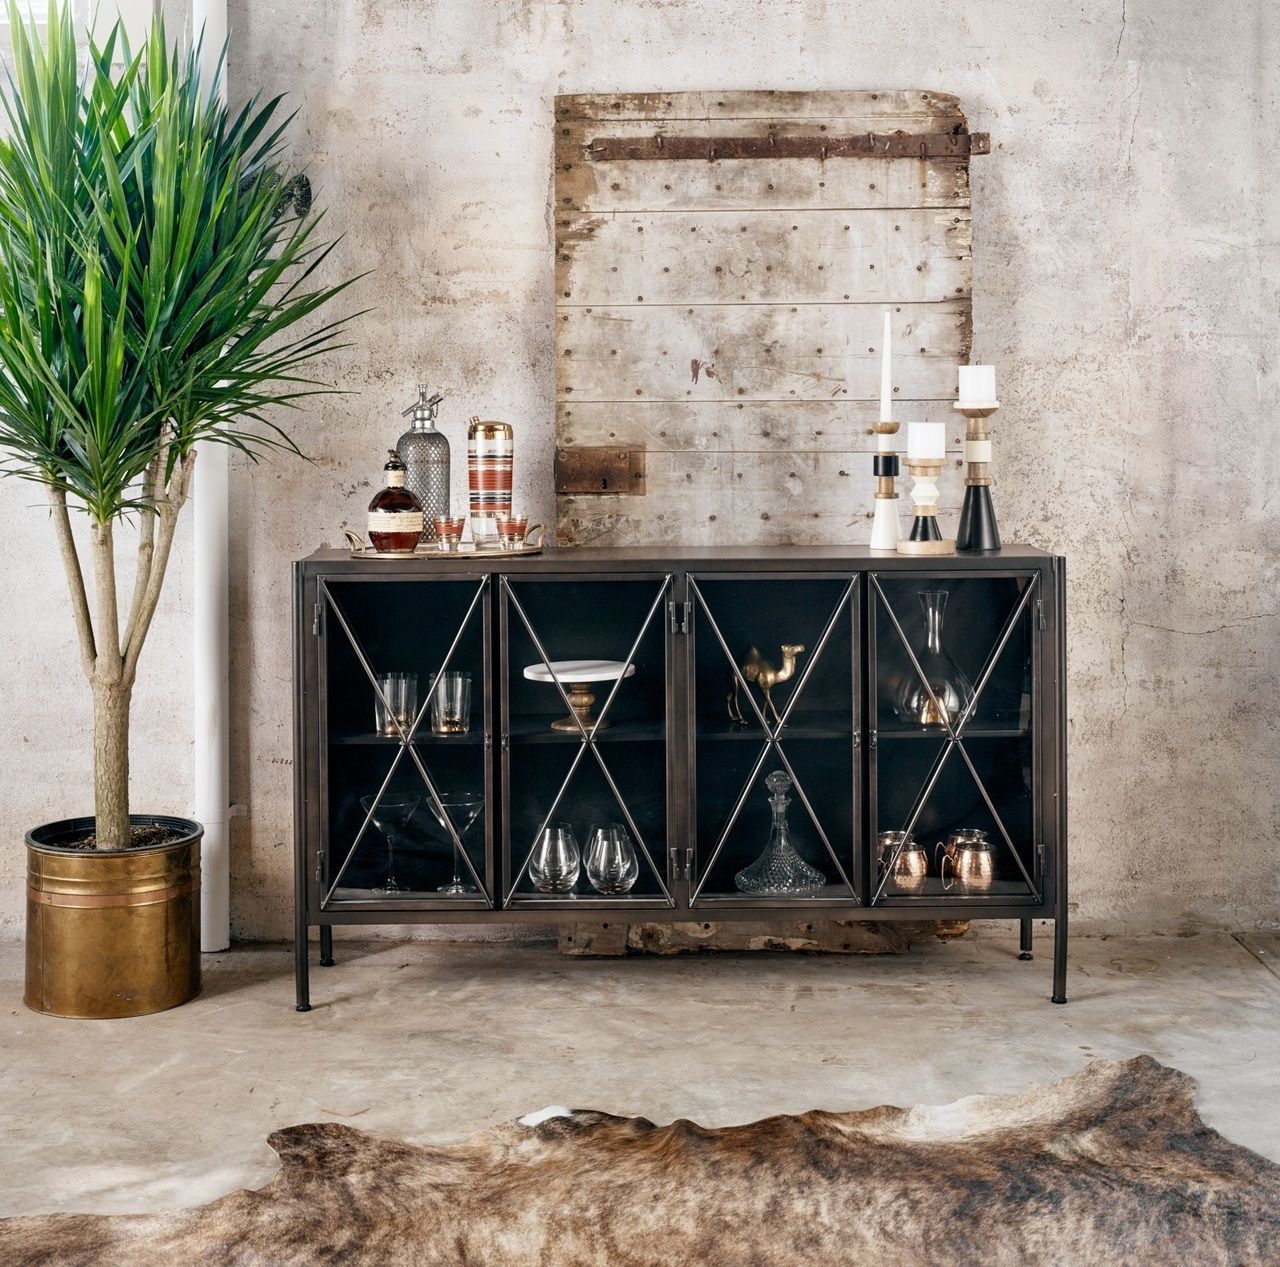 Aged Black Metal Media Console Sideboard | Decorate|furnishings Throughout Walters Media Console Tables (View 9 of 20)